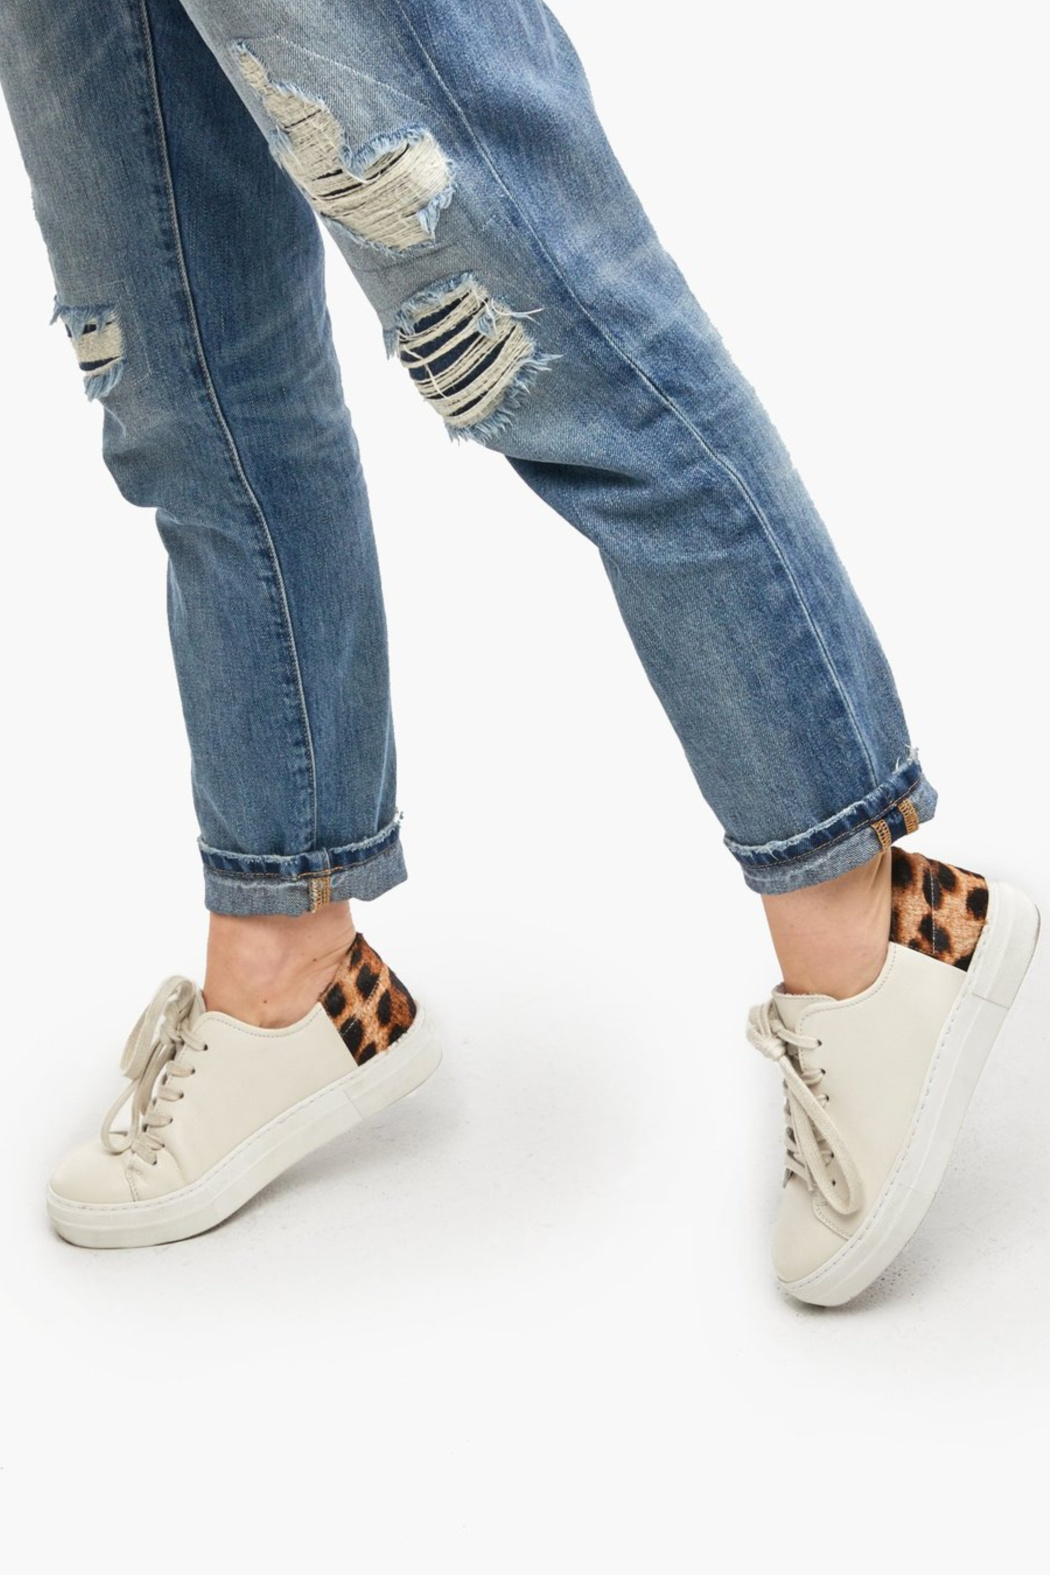 Able Emmy Leopard Sneakers - Front Full Image